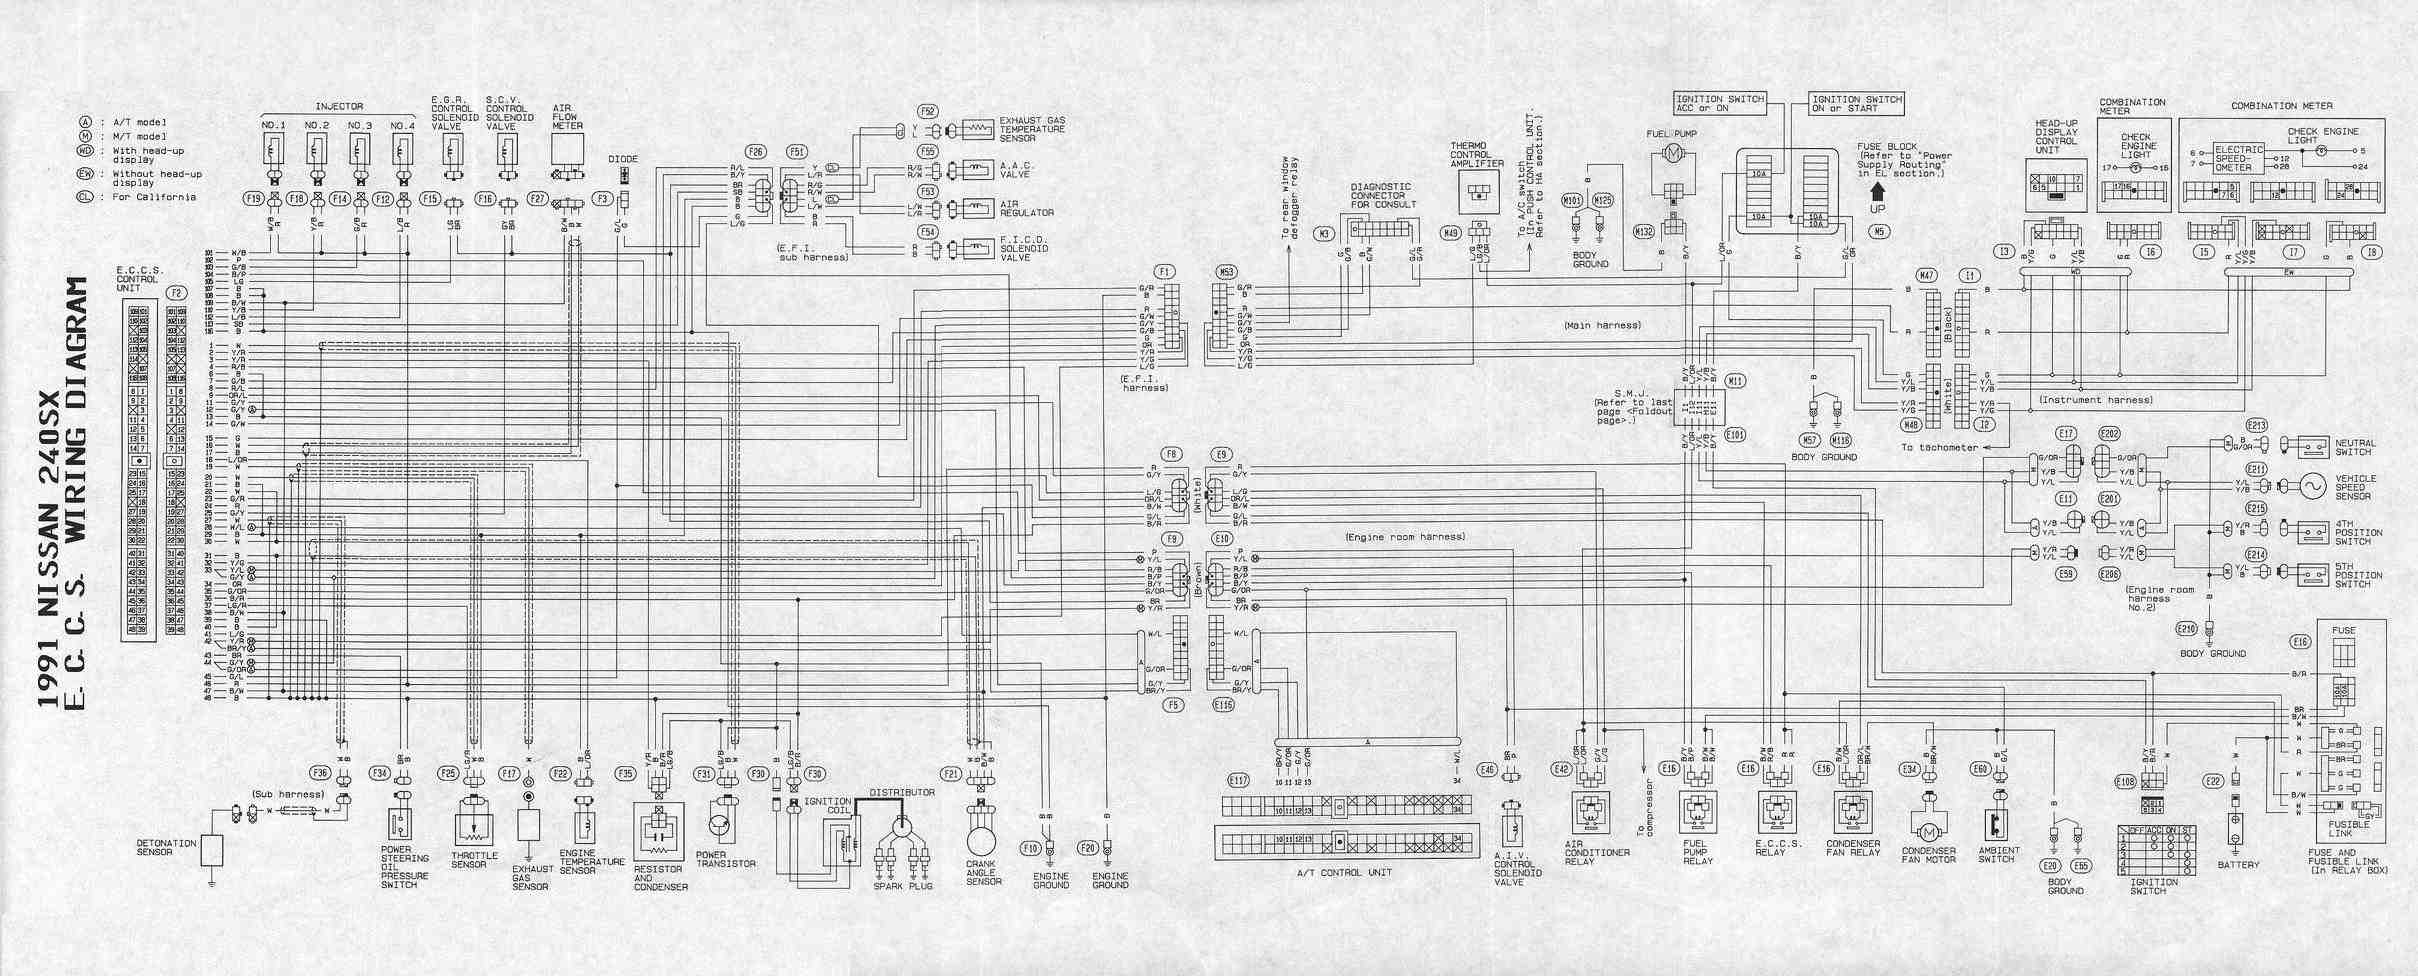 91 240sx Ignition Coil Diagram Free Download Wiring Diagrams Ignition  Switch Diagram 91 240sx Ignition Coil Diagram